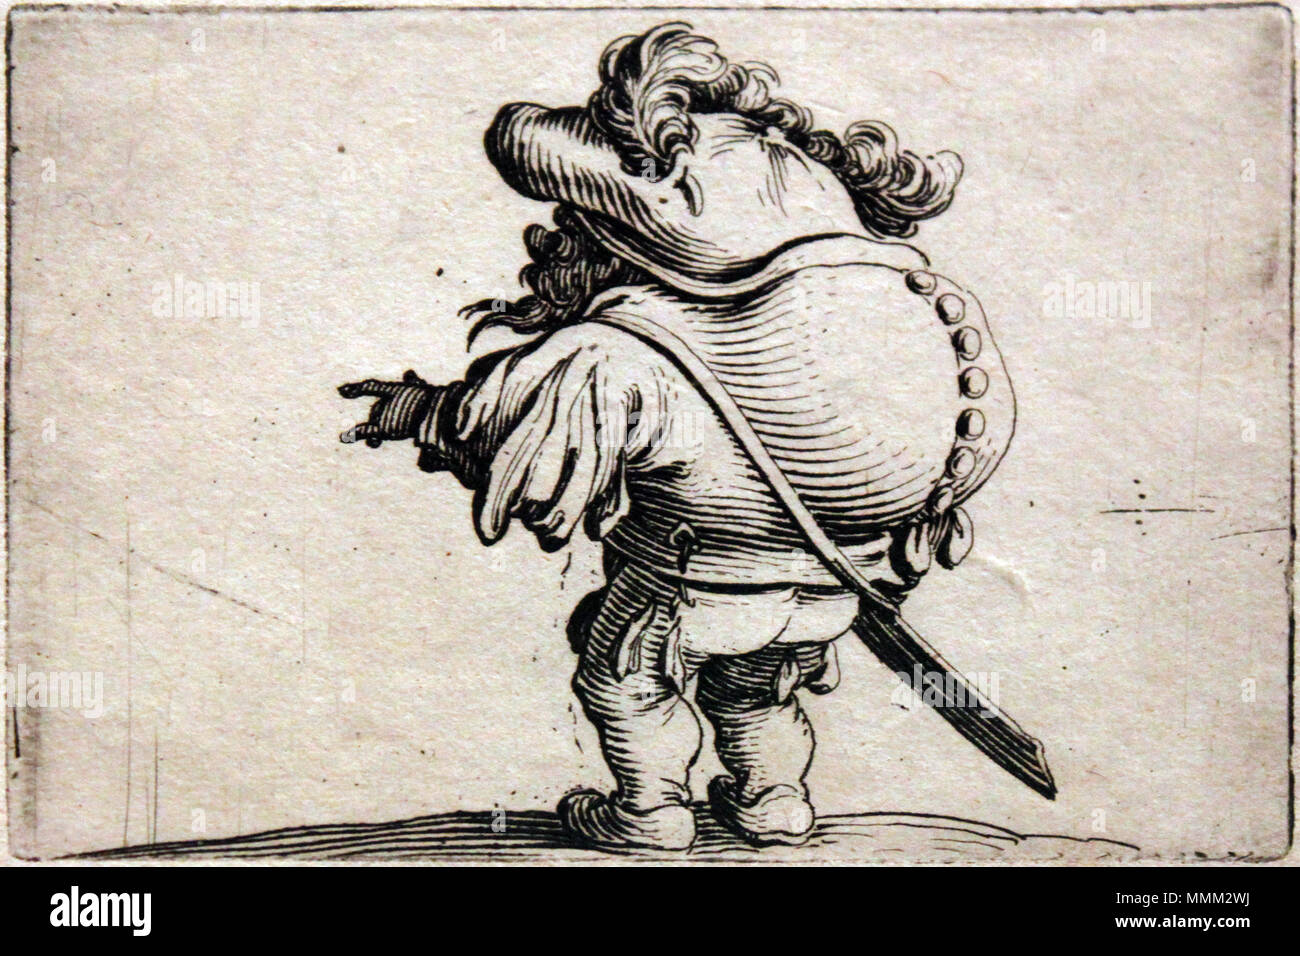 . English: Varie Figure Gobbi: Series of 21 etchings: The Hunchbacked Dwarf Deutsch: Varie Figure Gobbi; Folge von 21 Radierungen, hier: Der Zwerg mit dem Buckel  . 1616.   Jacques Callot  (1592–1635)      Description French printmaker, draughtsman and etcher  Date of birth/death between 25 March 1592 and 21 August 1592 25 March 1635  Location of birth/death Nancy Nancy  Work location Nancy, Firenze, Torino, Roma, Breda, Bruxelles, Paris  Authority control  : Q460124 VIAF:?19687783 ISNI:?0000 0001 2122 9857 ULAN:?500021688 LCCN:?n50032190 NLA:?35024962 WorldCat 1620 Callot Der Zwerg mit dem Bu - Stock Image